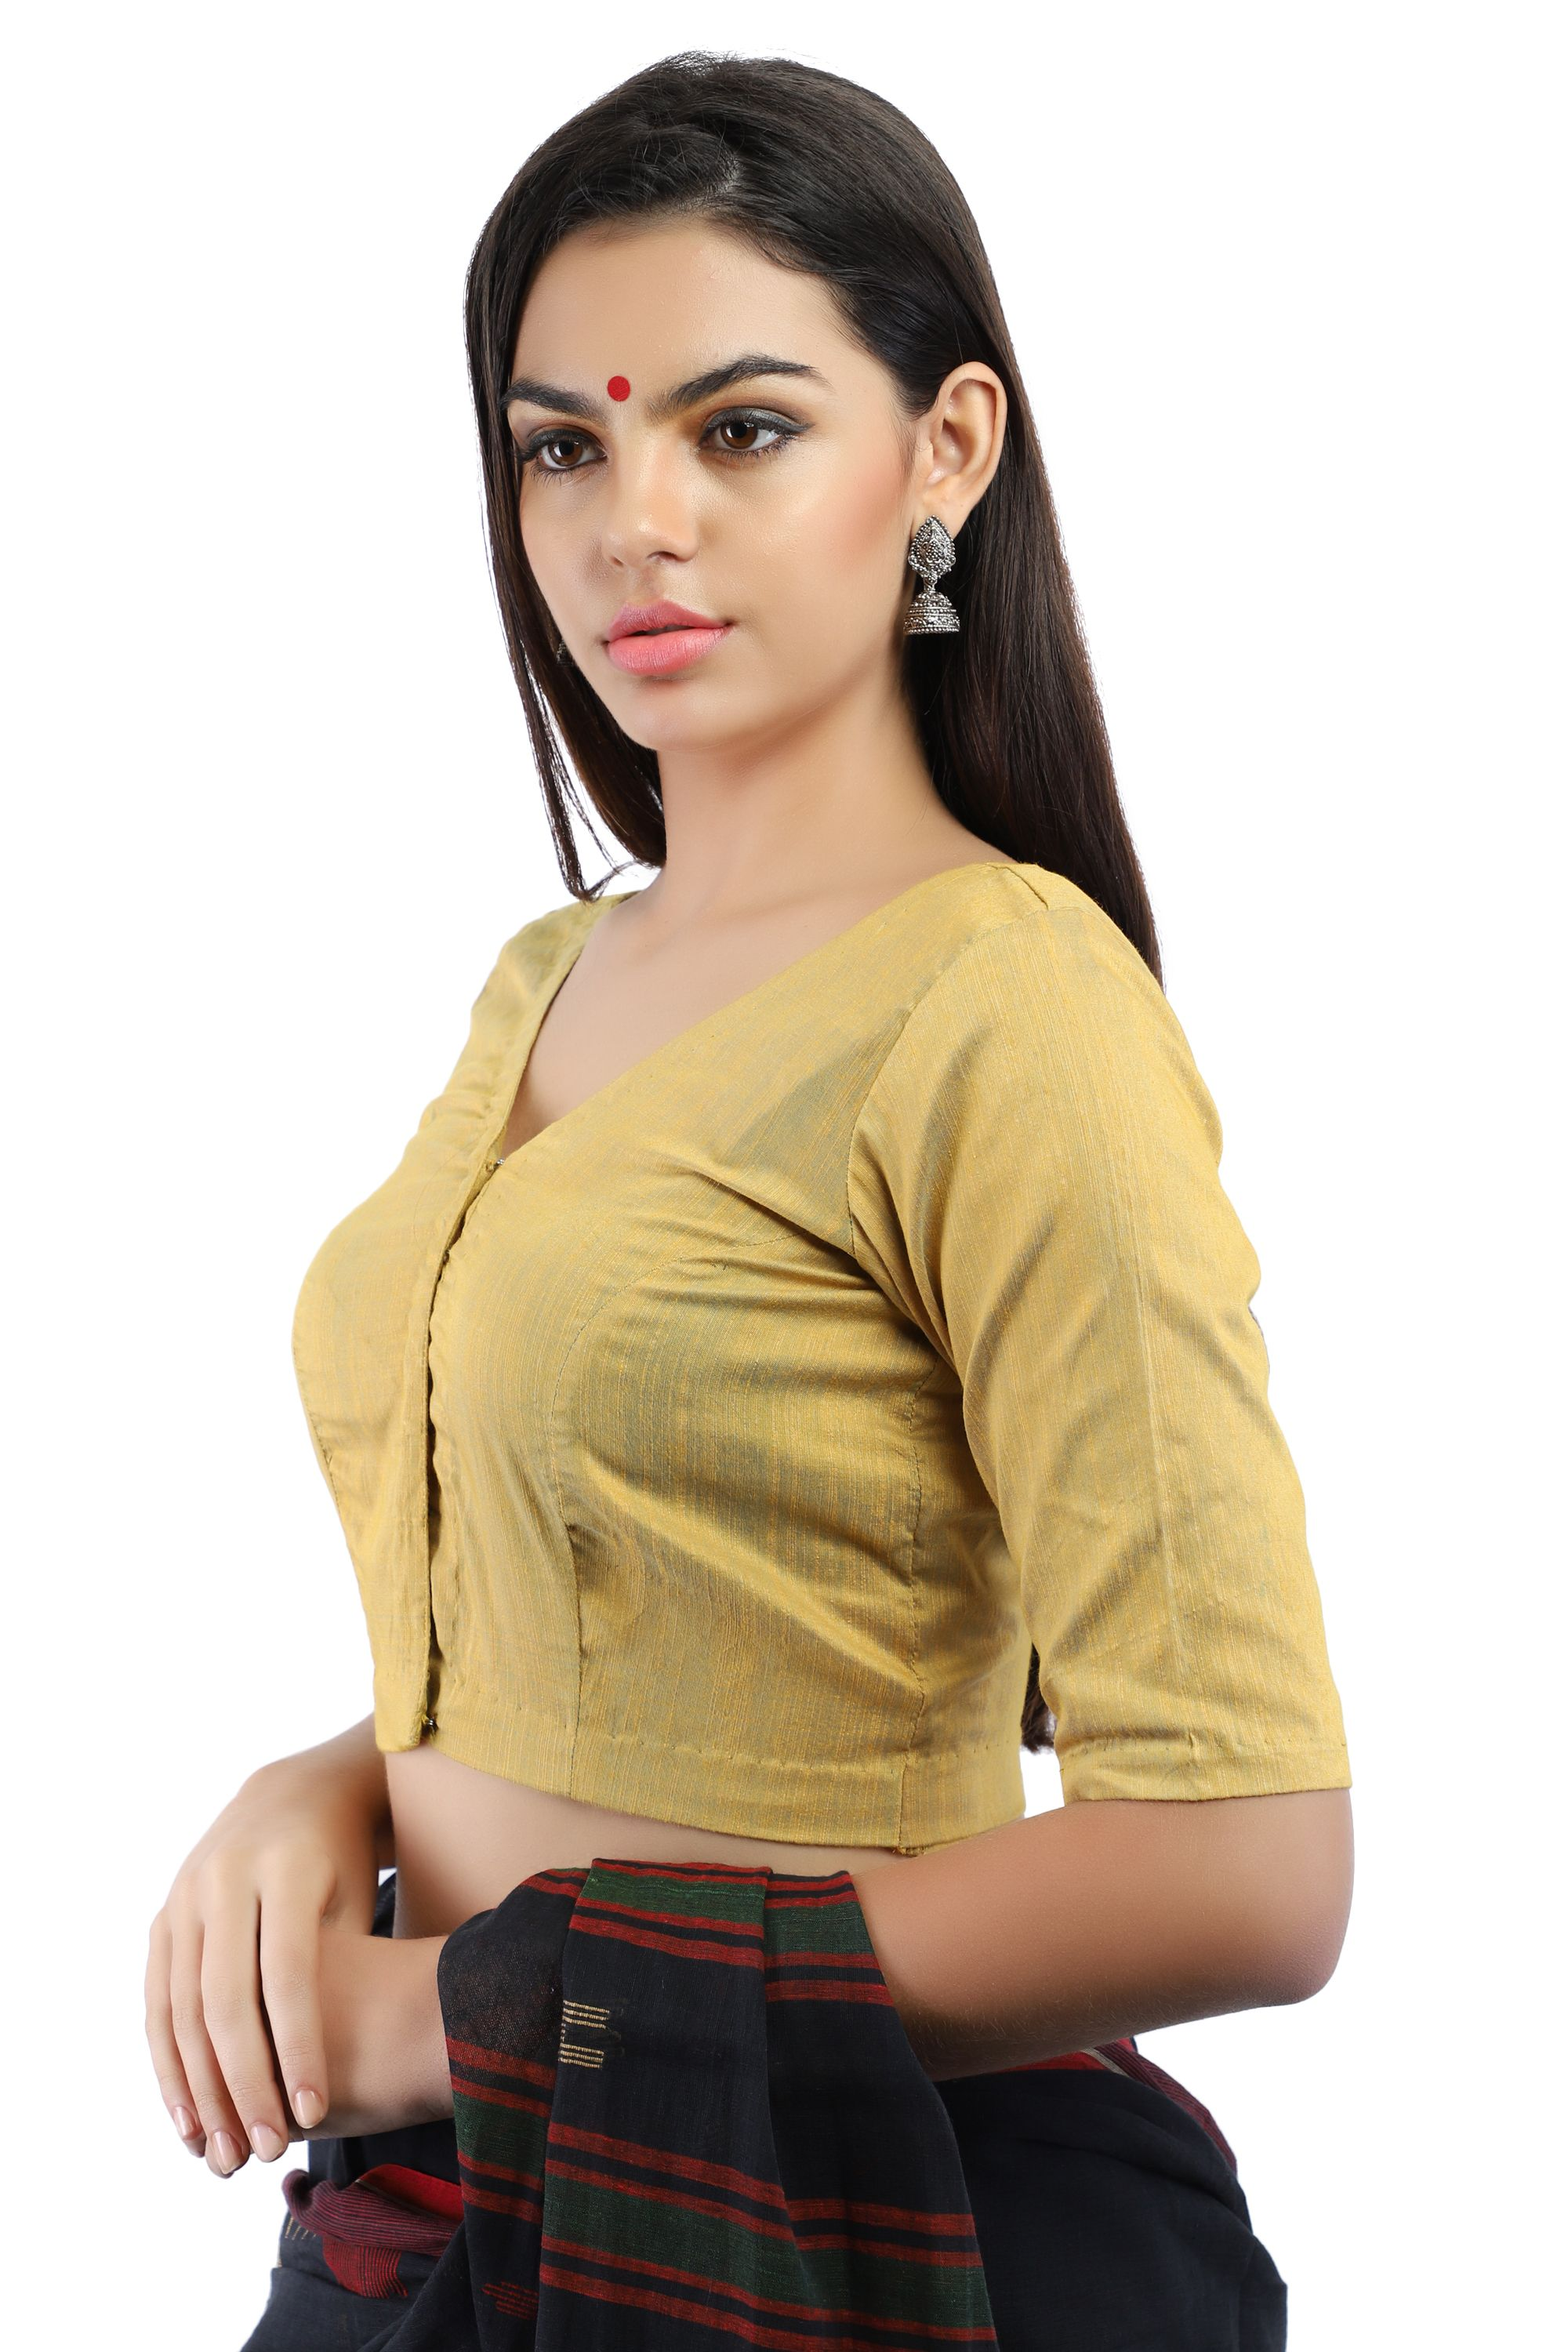 Silk Slub Yellow and Blue Dual Tone Non-Padded Blouse in V-Neck With Front Hook Closure 1